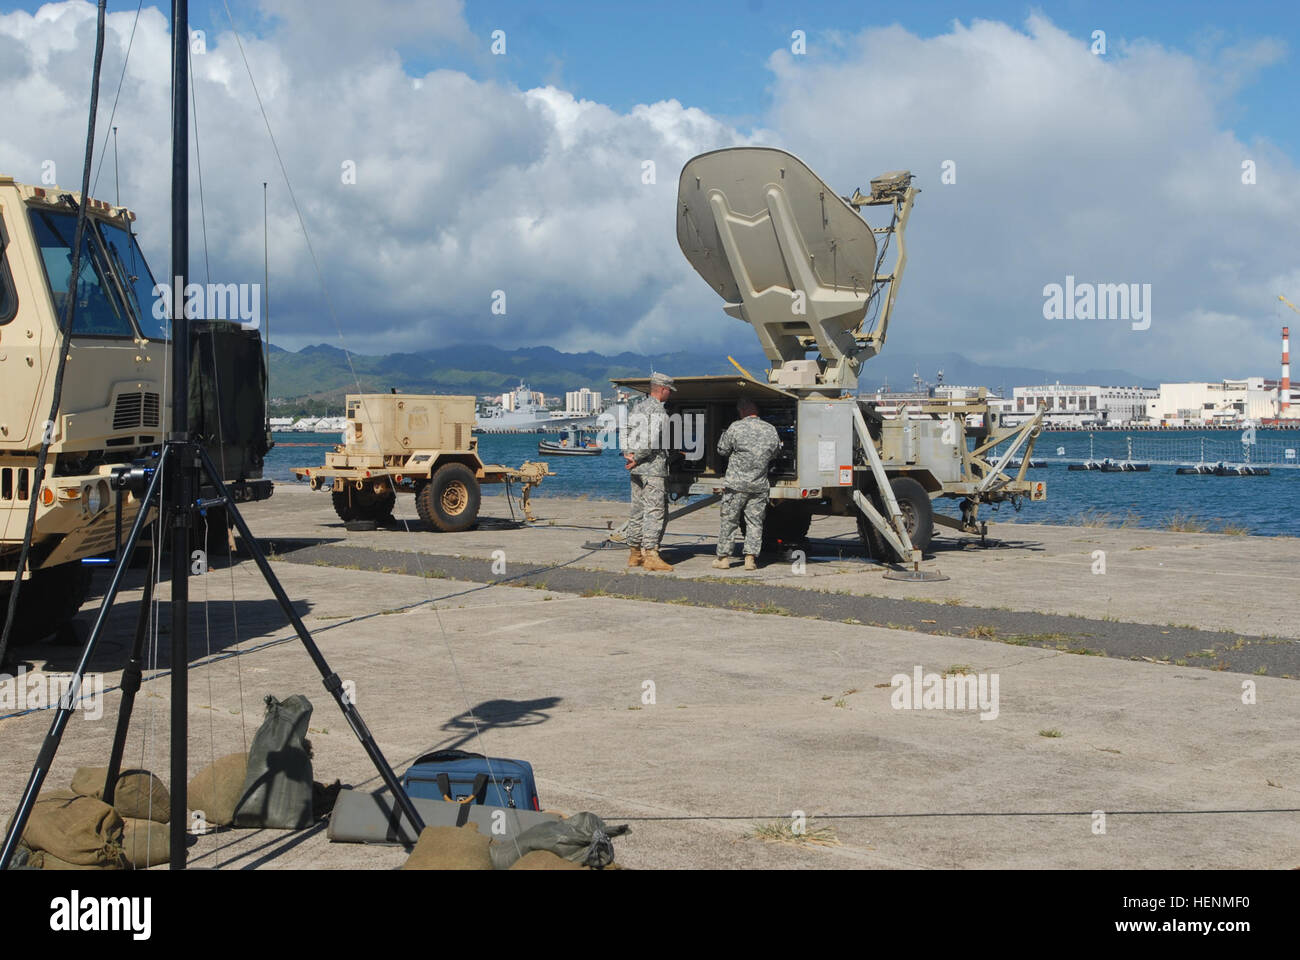 73rd Transportation Company High Resolution Stock Photography And Images Alamy